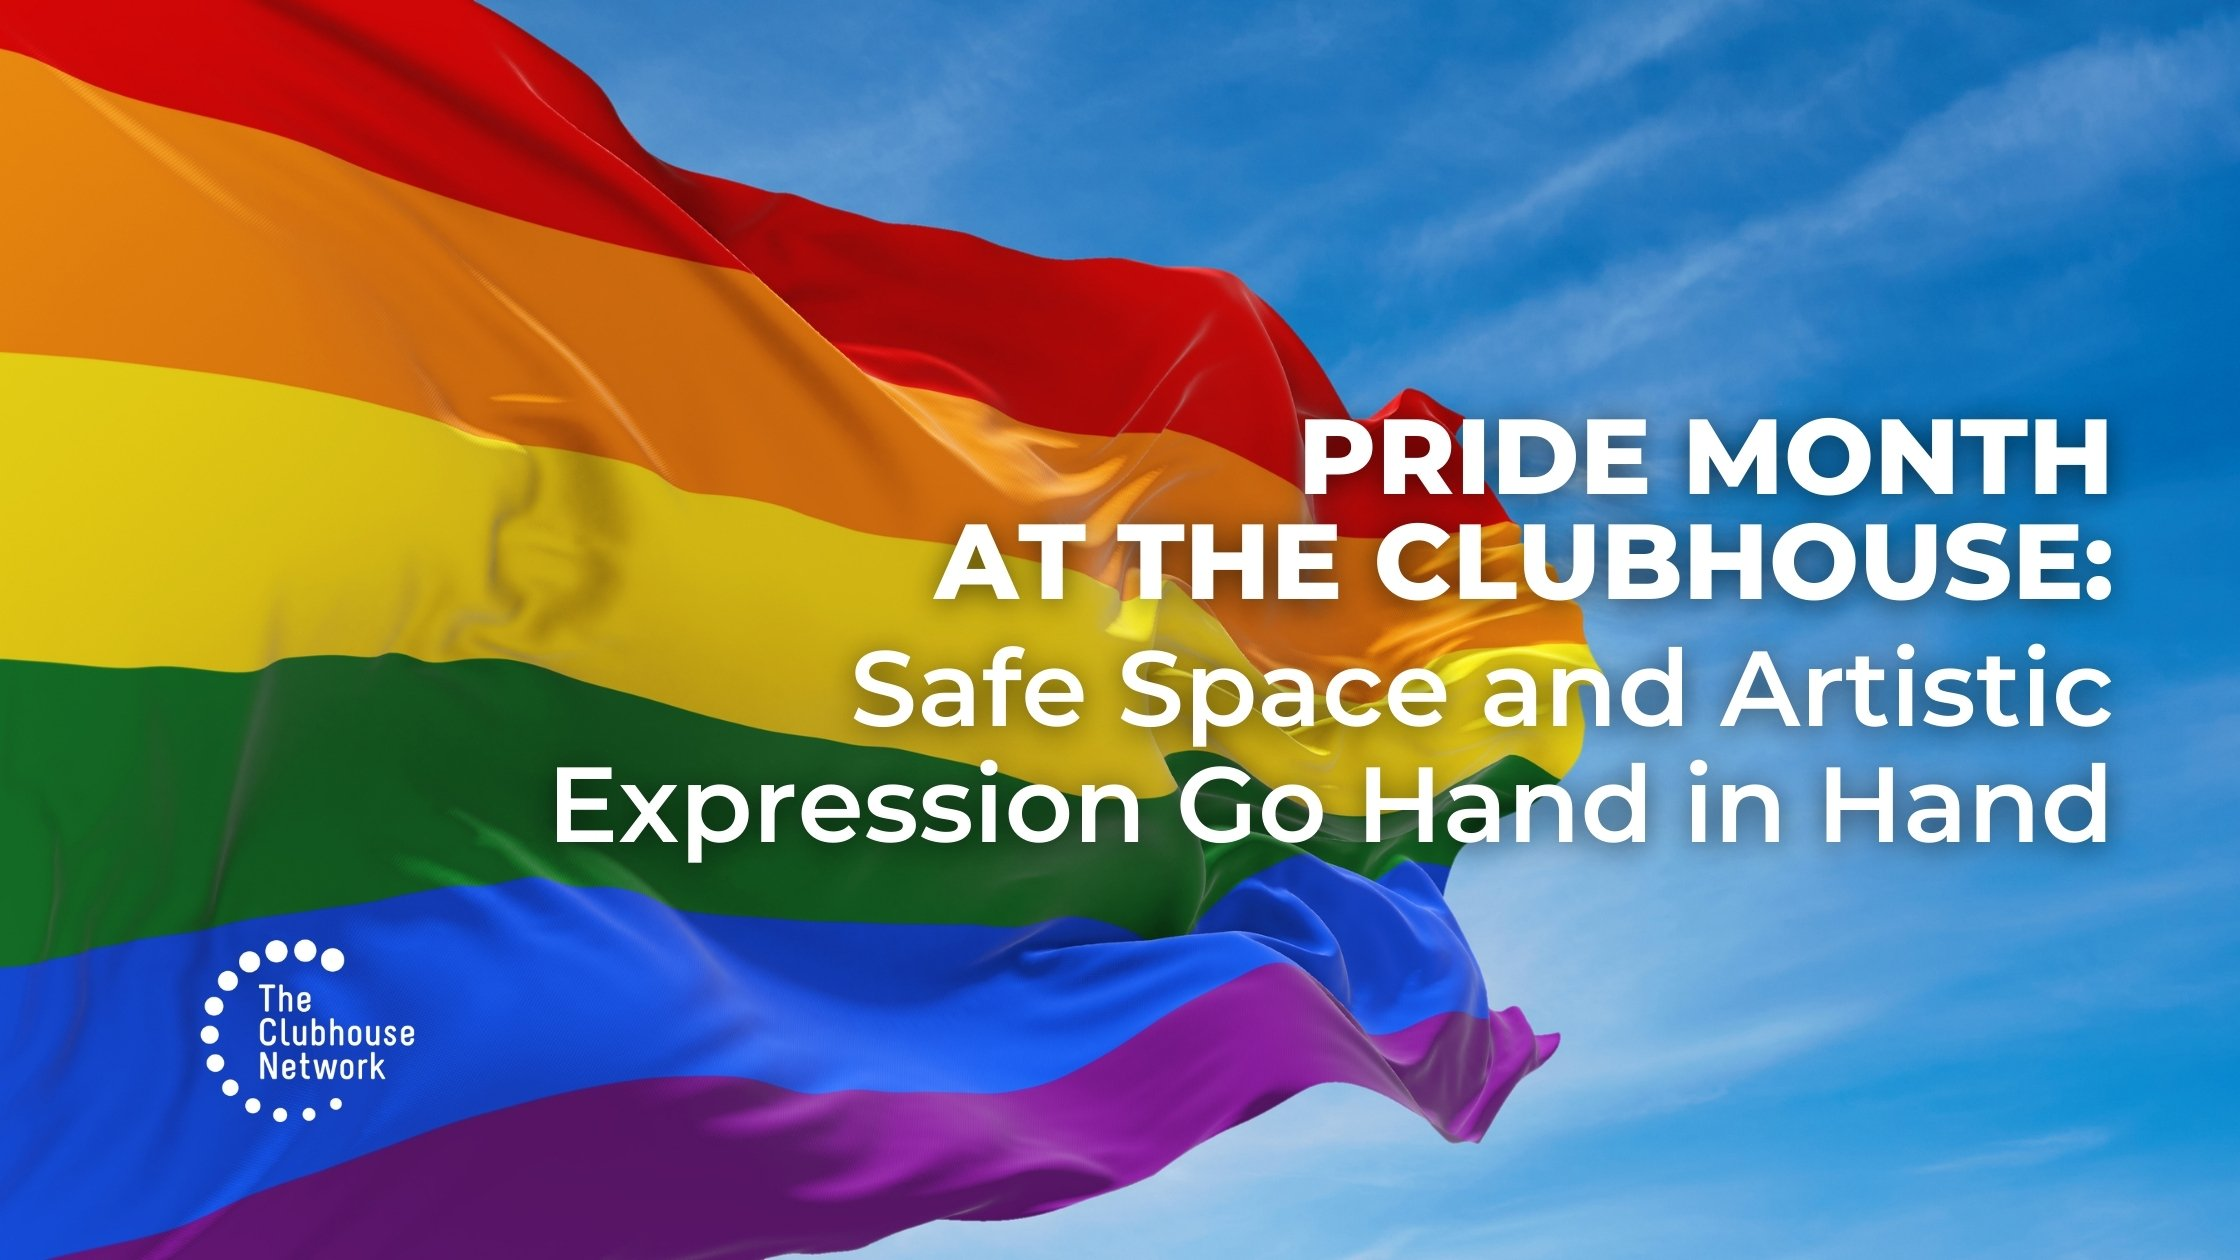 Pride Month at The Clubhouse: Safe Space and Artistic Expression Go Hand in Hand